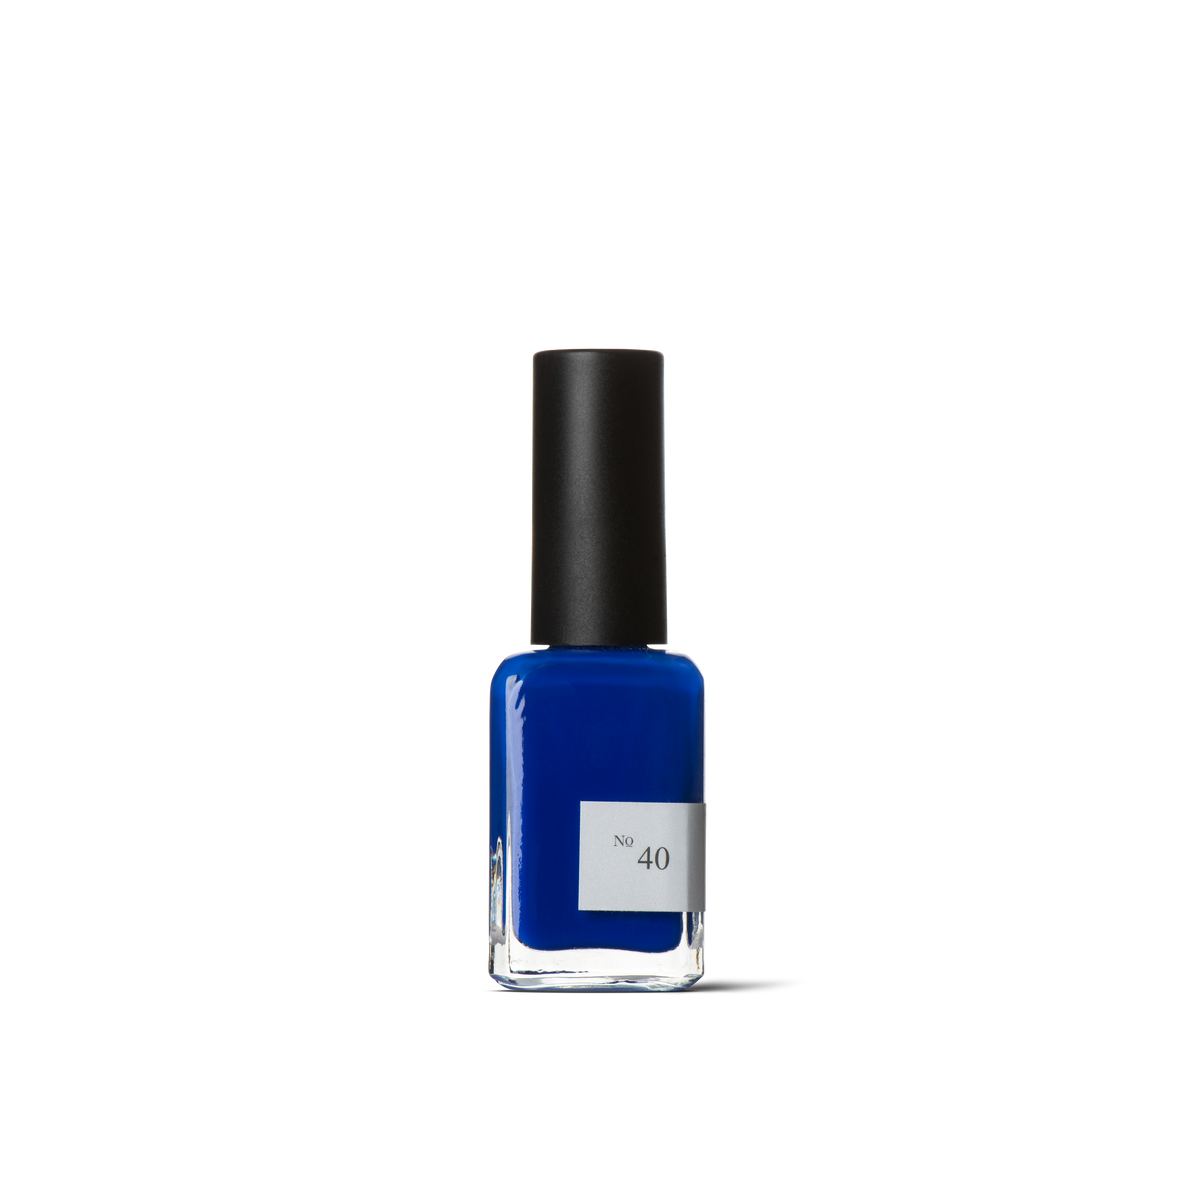 Nailpolish no. 40 (14 ml)